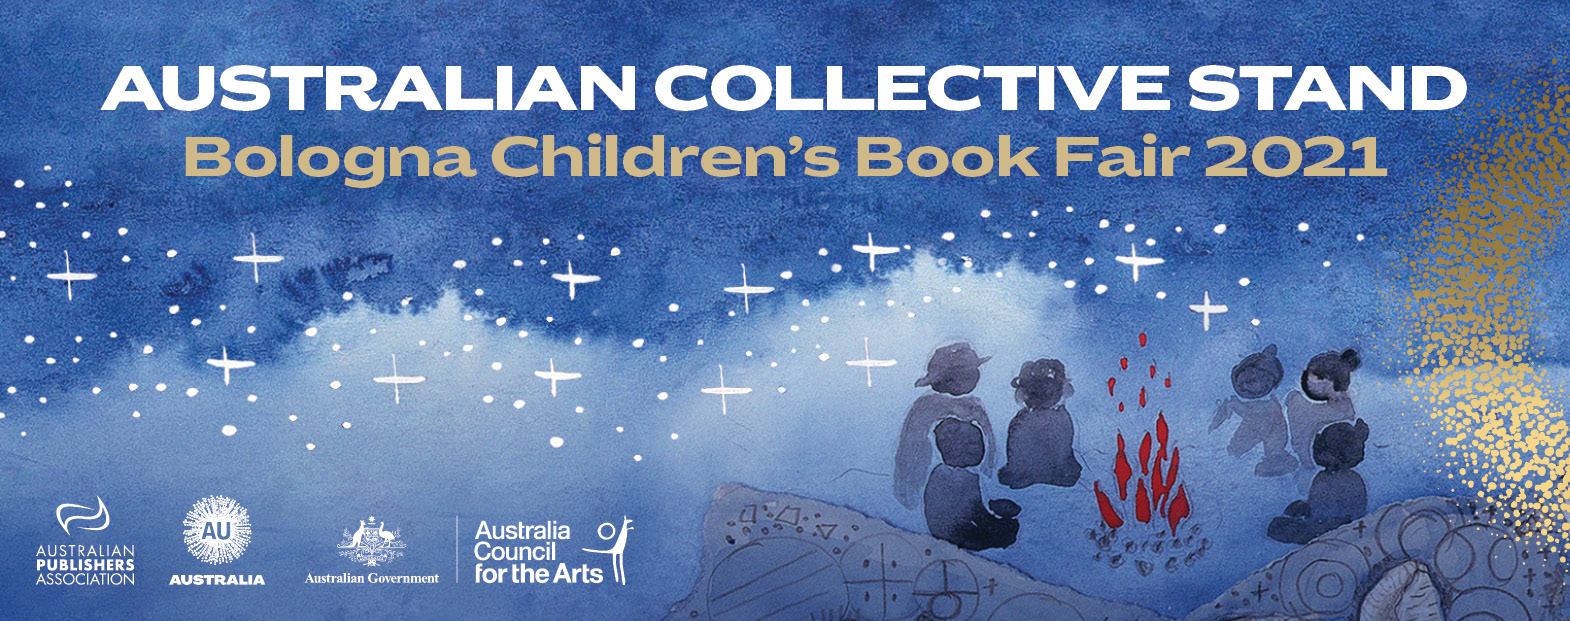 """A welcome banner reading """"Australian Collective Stand - Bologna Children's Book Fair 2021"""" and featuring the logos of the APA, the Australian Nation Brand, The australian Government and teh Australian Council For the Arts"""